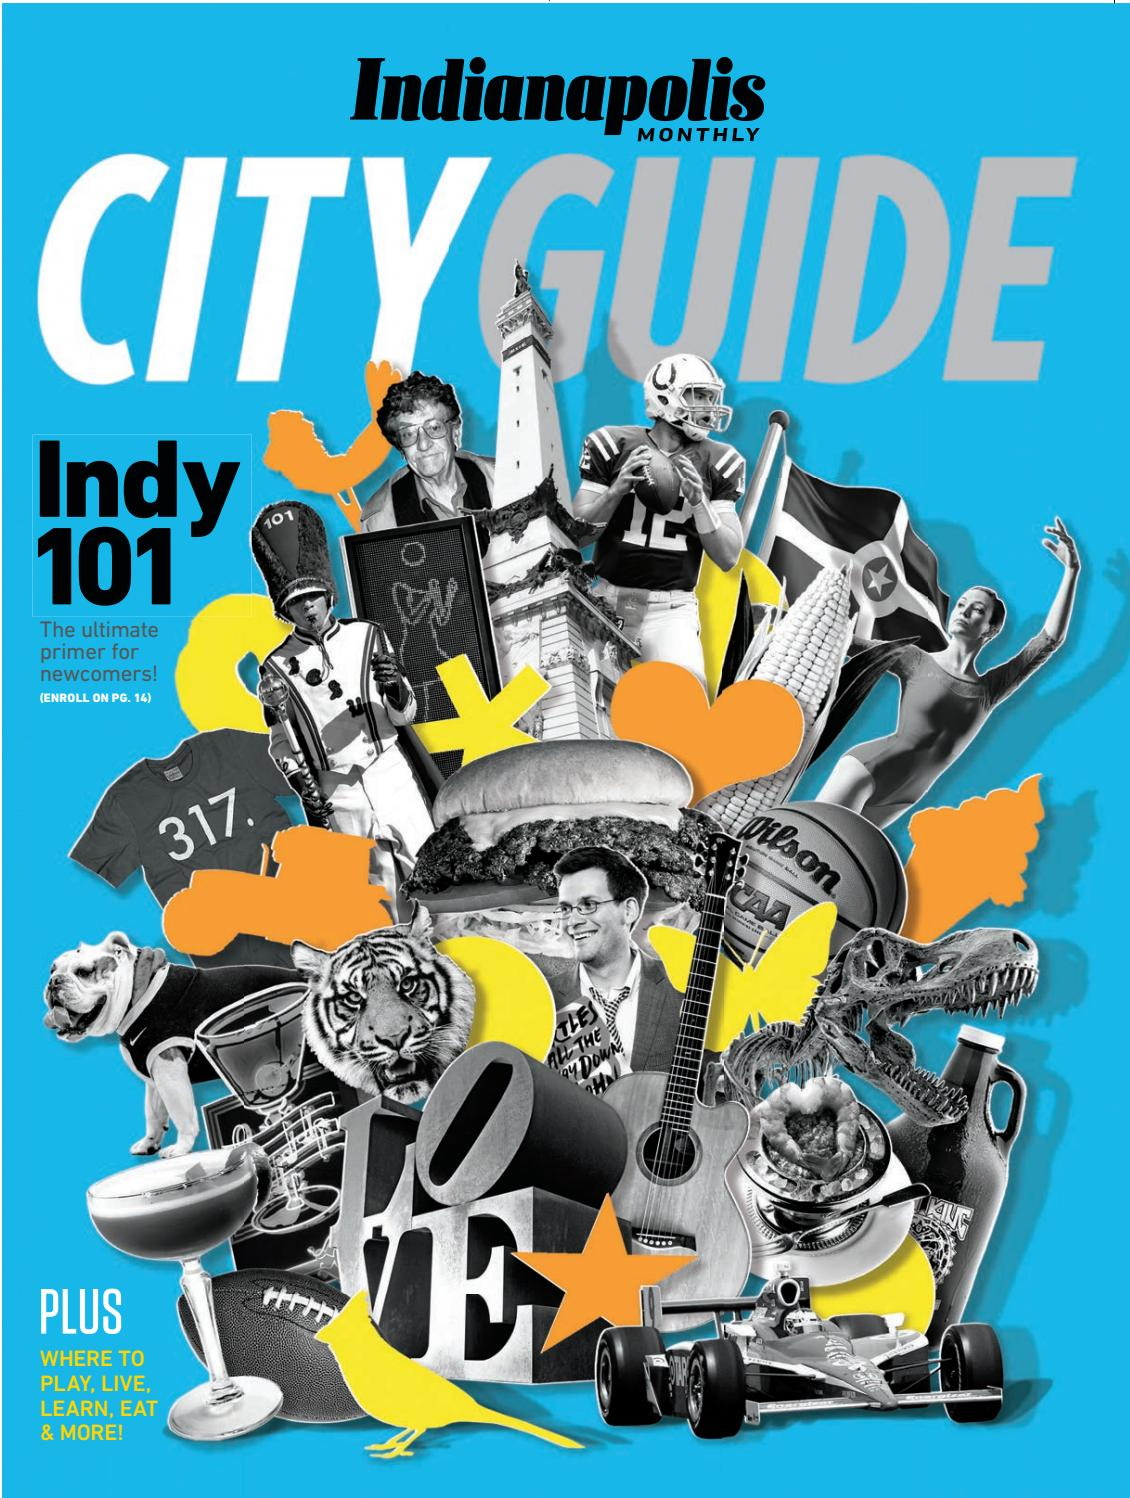 2018 Indianapolis Monthly City Guide - Tucker edition by